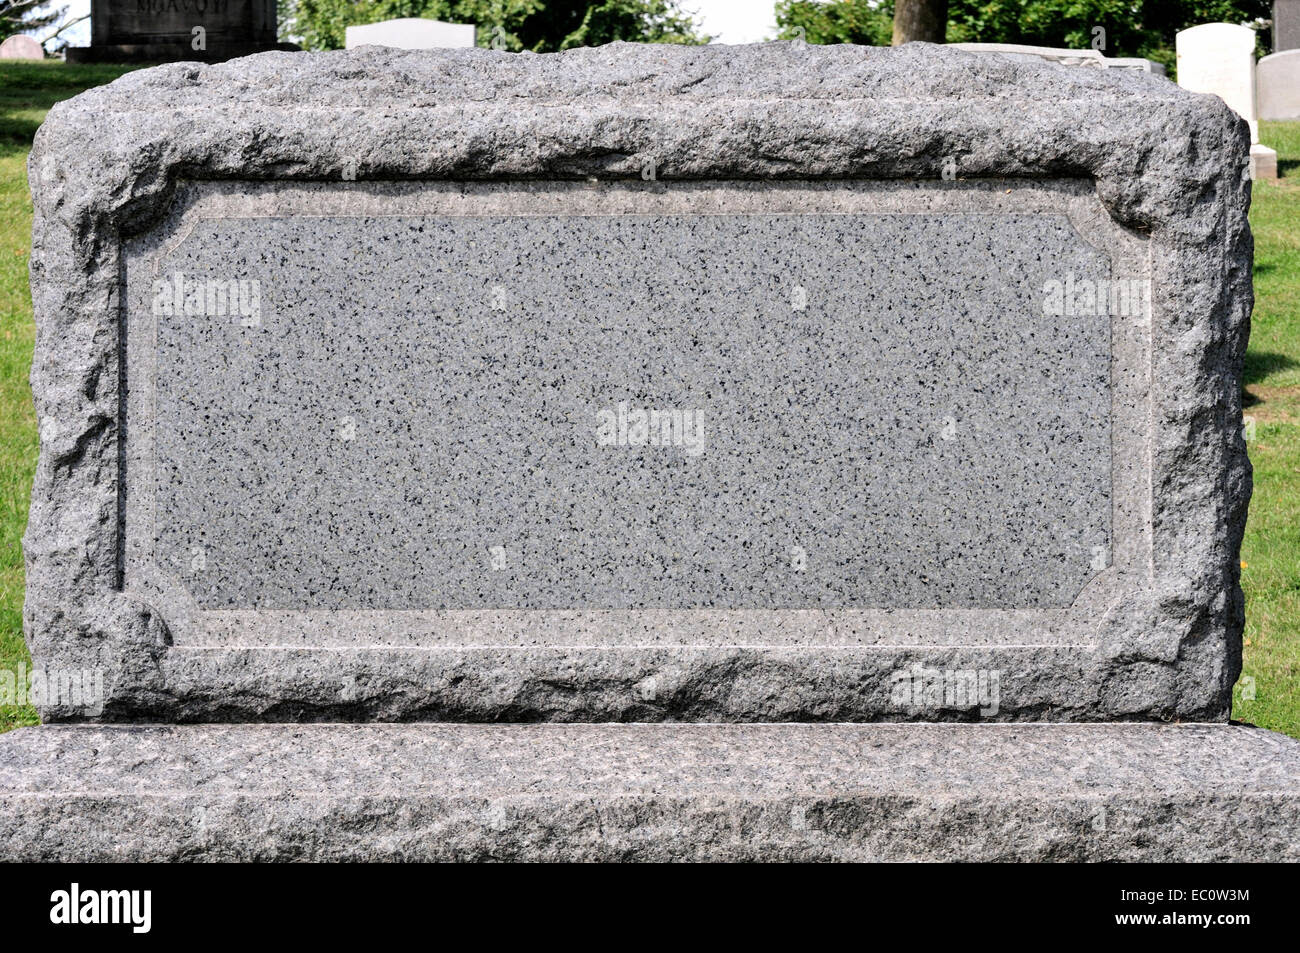 A Blank Tombstone In A Cemetery Setting Stock Photo, Royalty Free ...